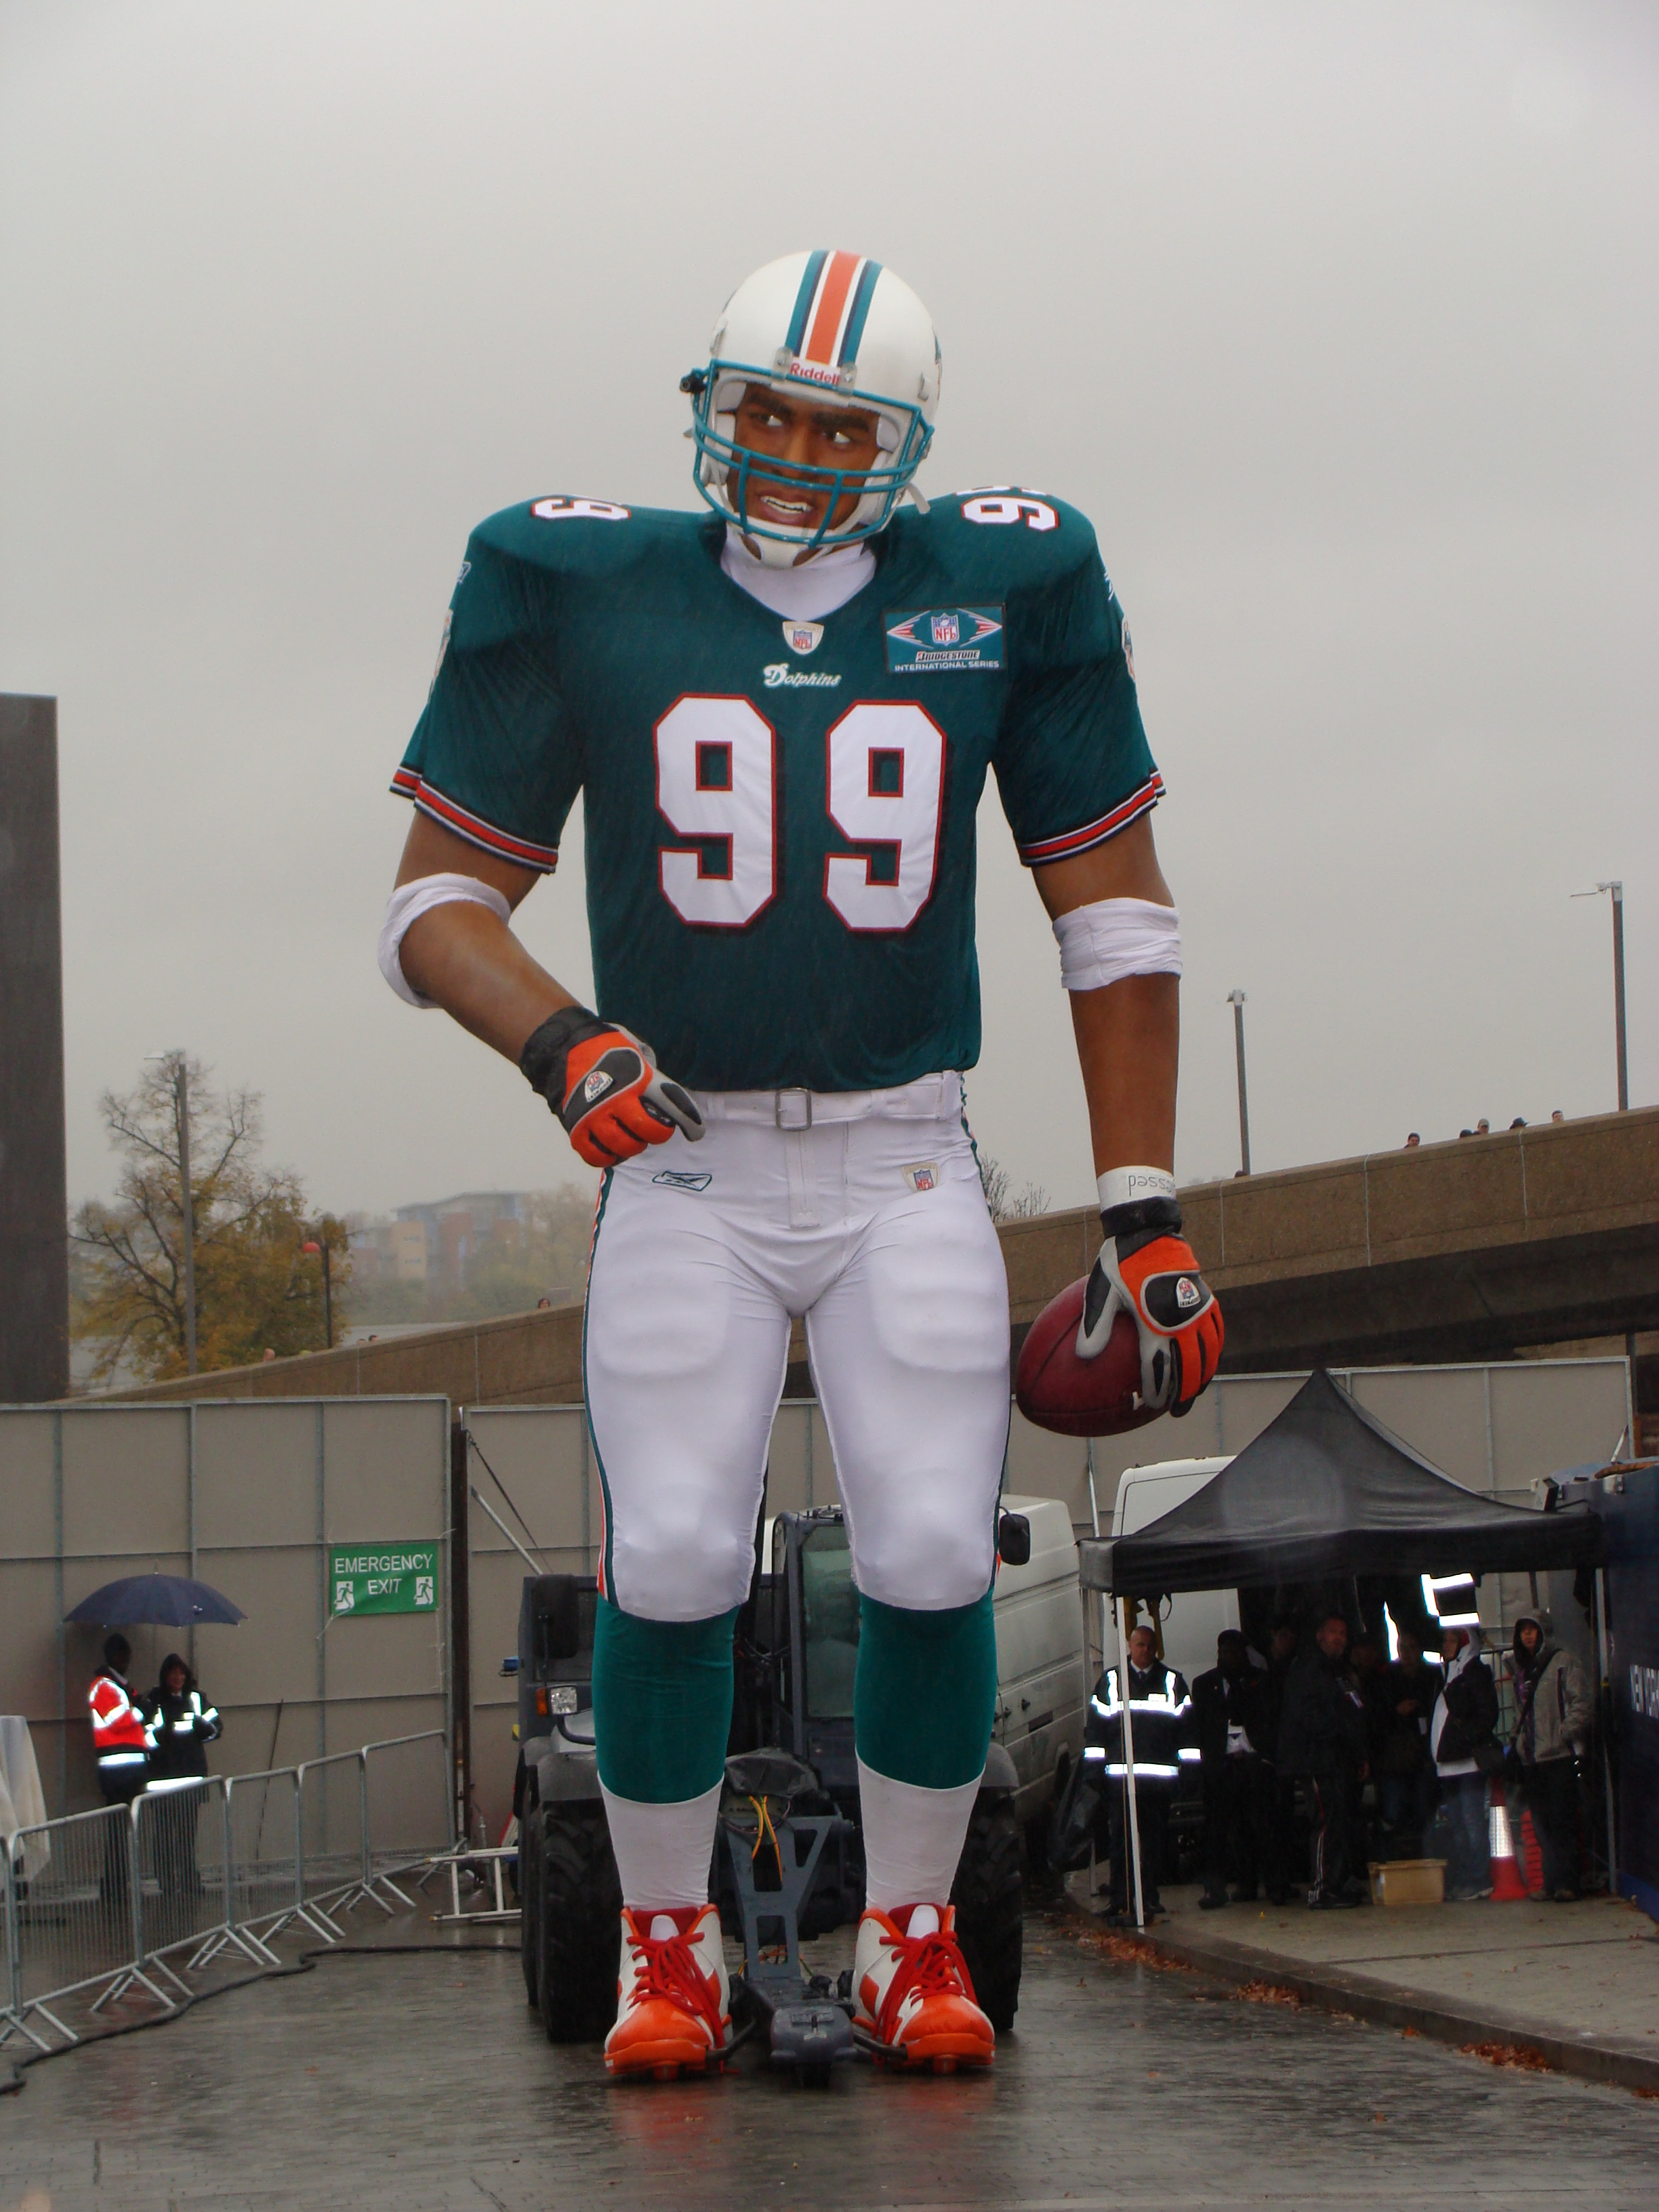 My own pic of the 40ft Jason Taylor outside Wembley Stadium in 2007